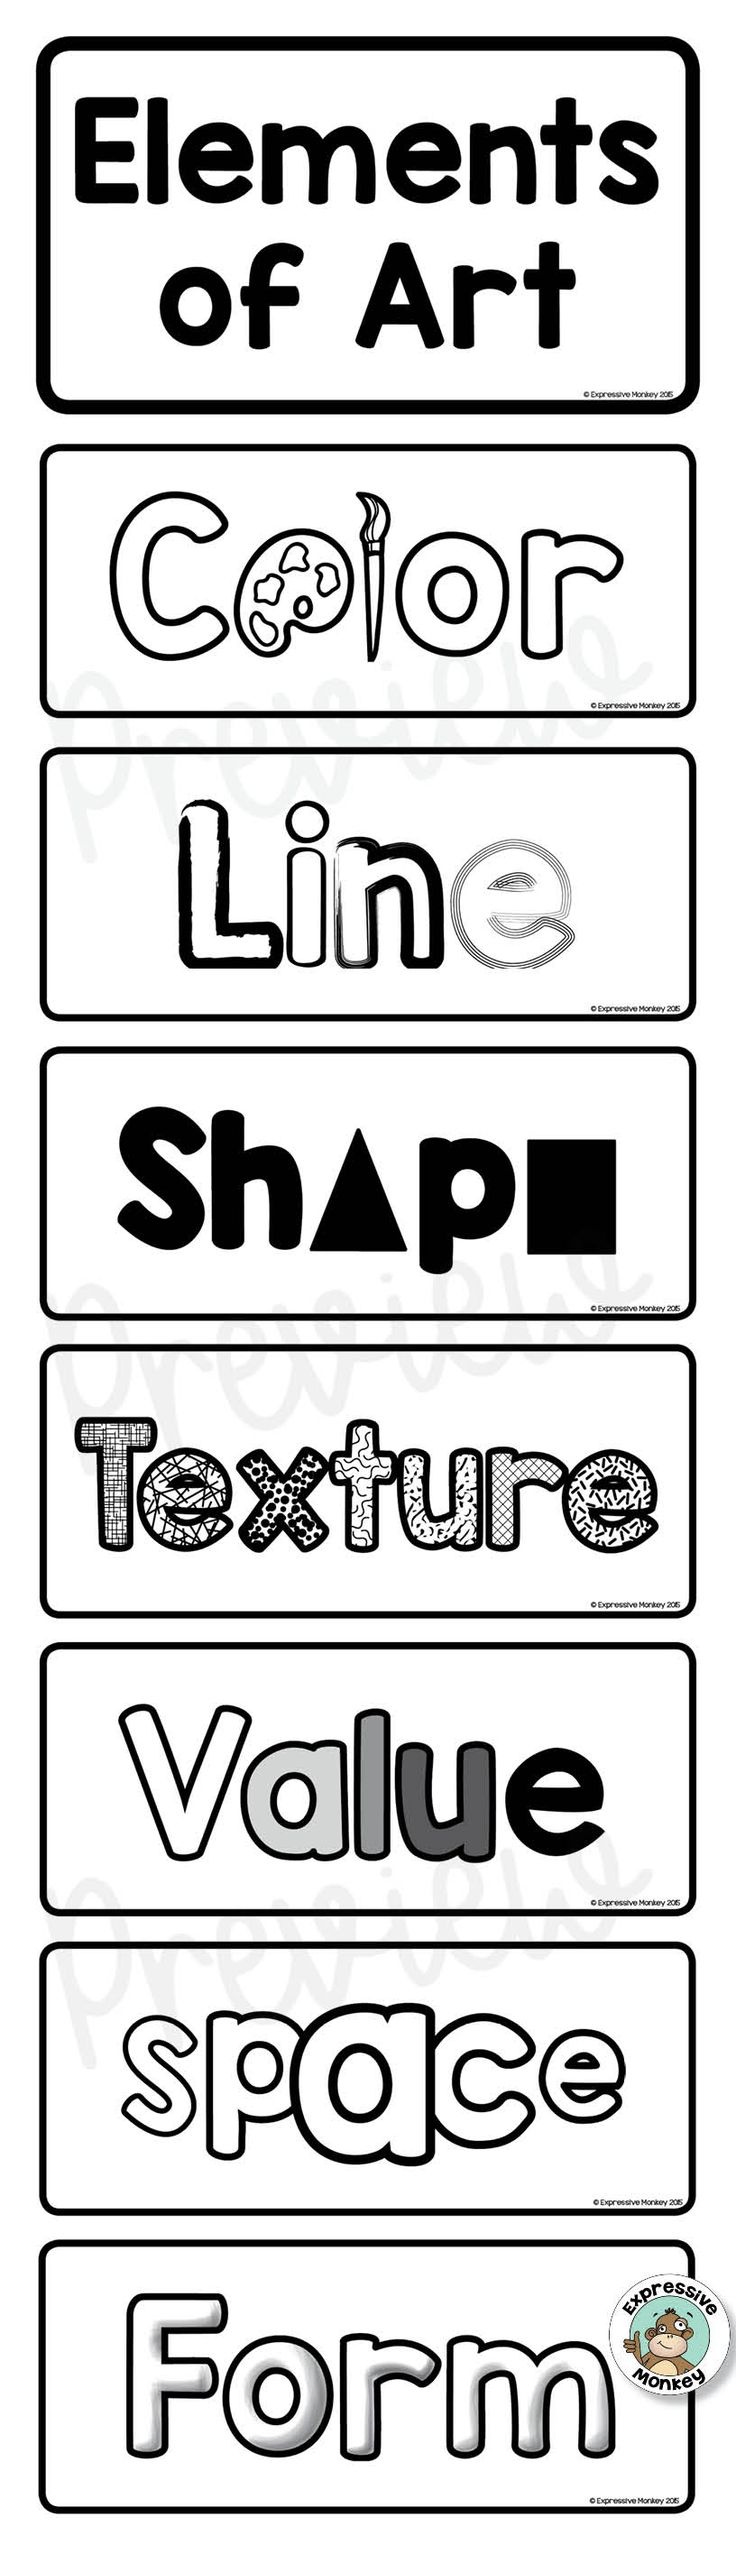 Teach the elements of art with ease using this interactive sketchbook activity.  Great to introduce or review the elements of art.  This page includes line, color, shape, value, form, space and texture. The opening flaps can reveal a definition, design or